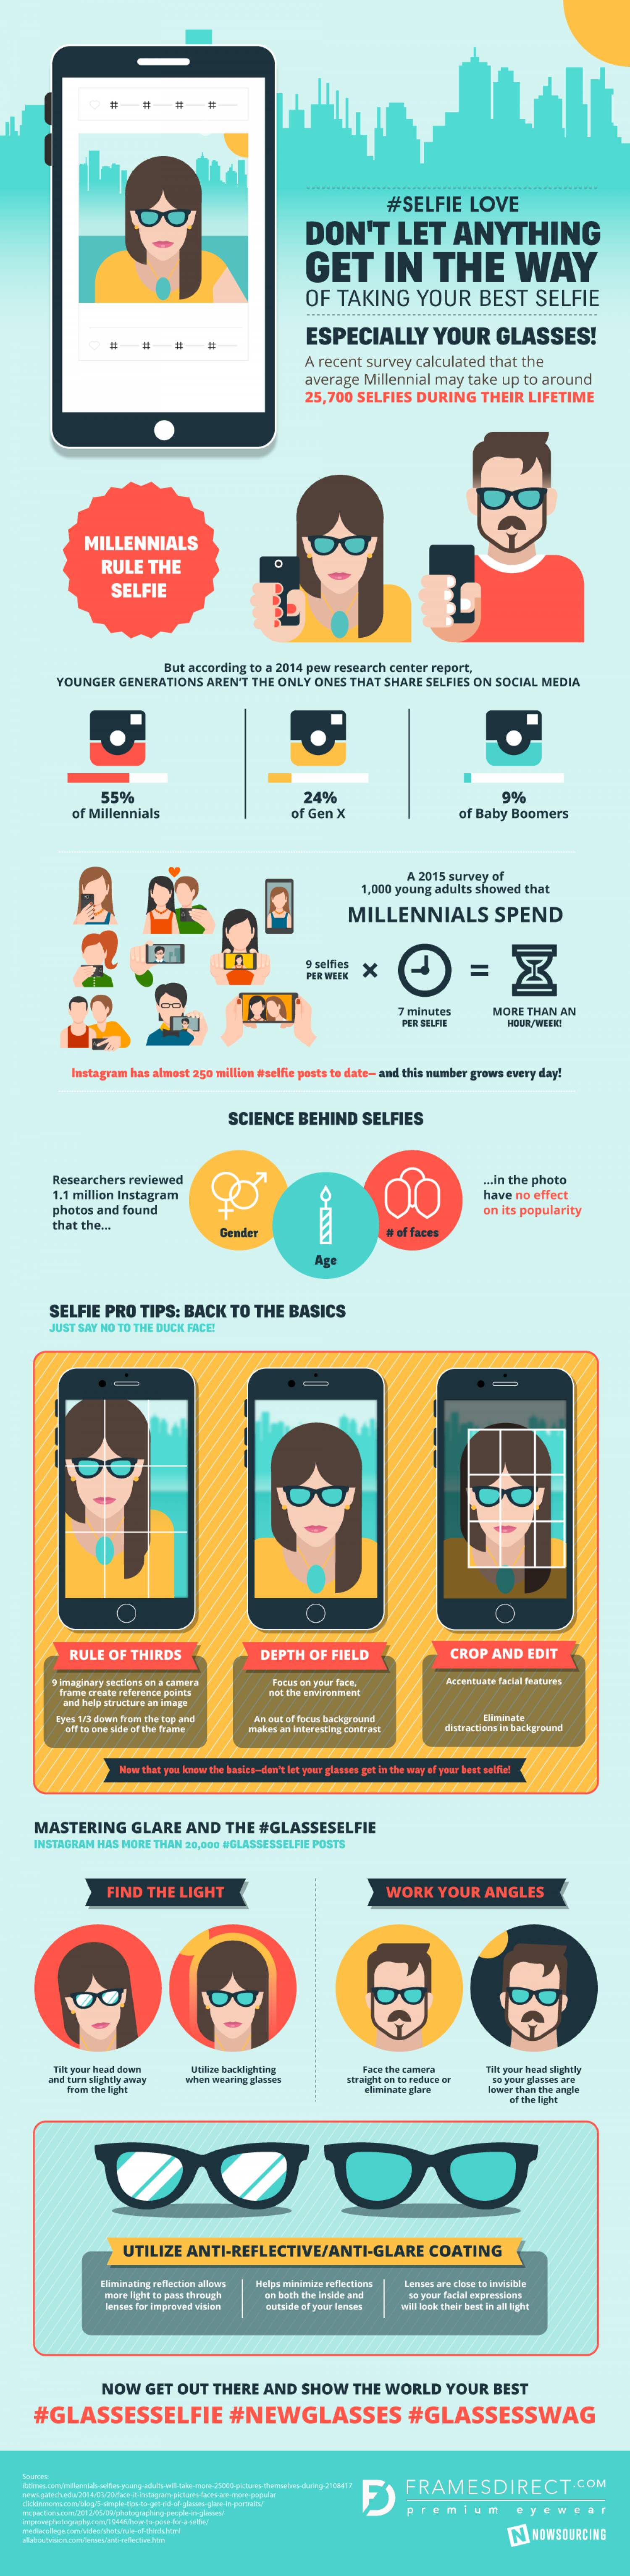 Mastering The Selfie With Glasses Infographic